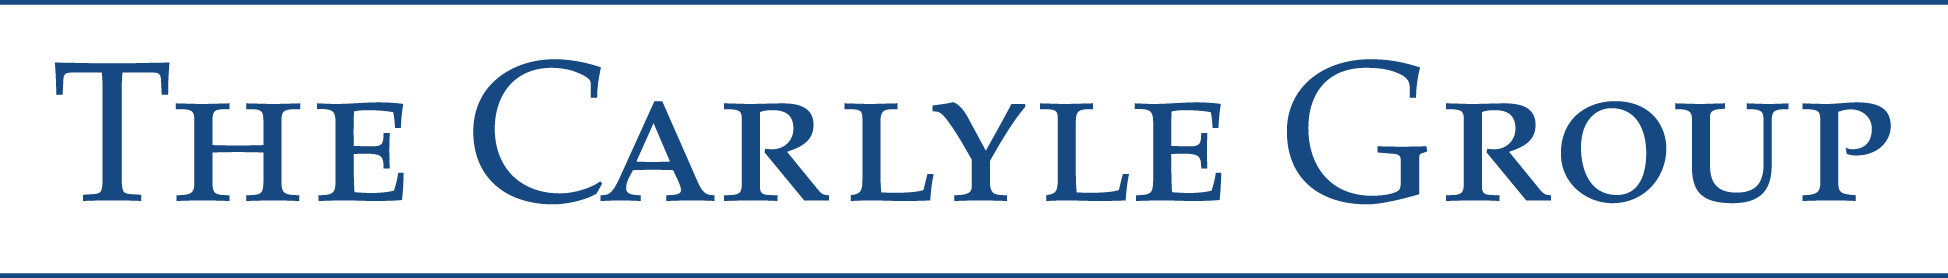 carlyle_group_logo.jpg